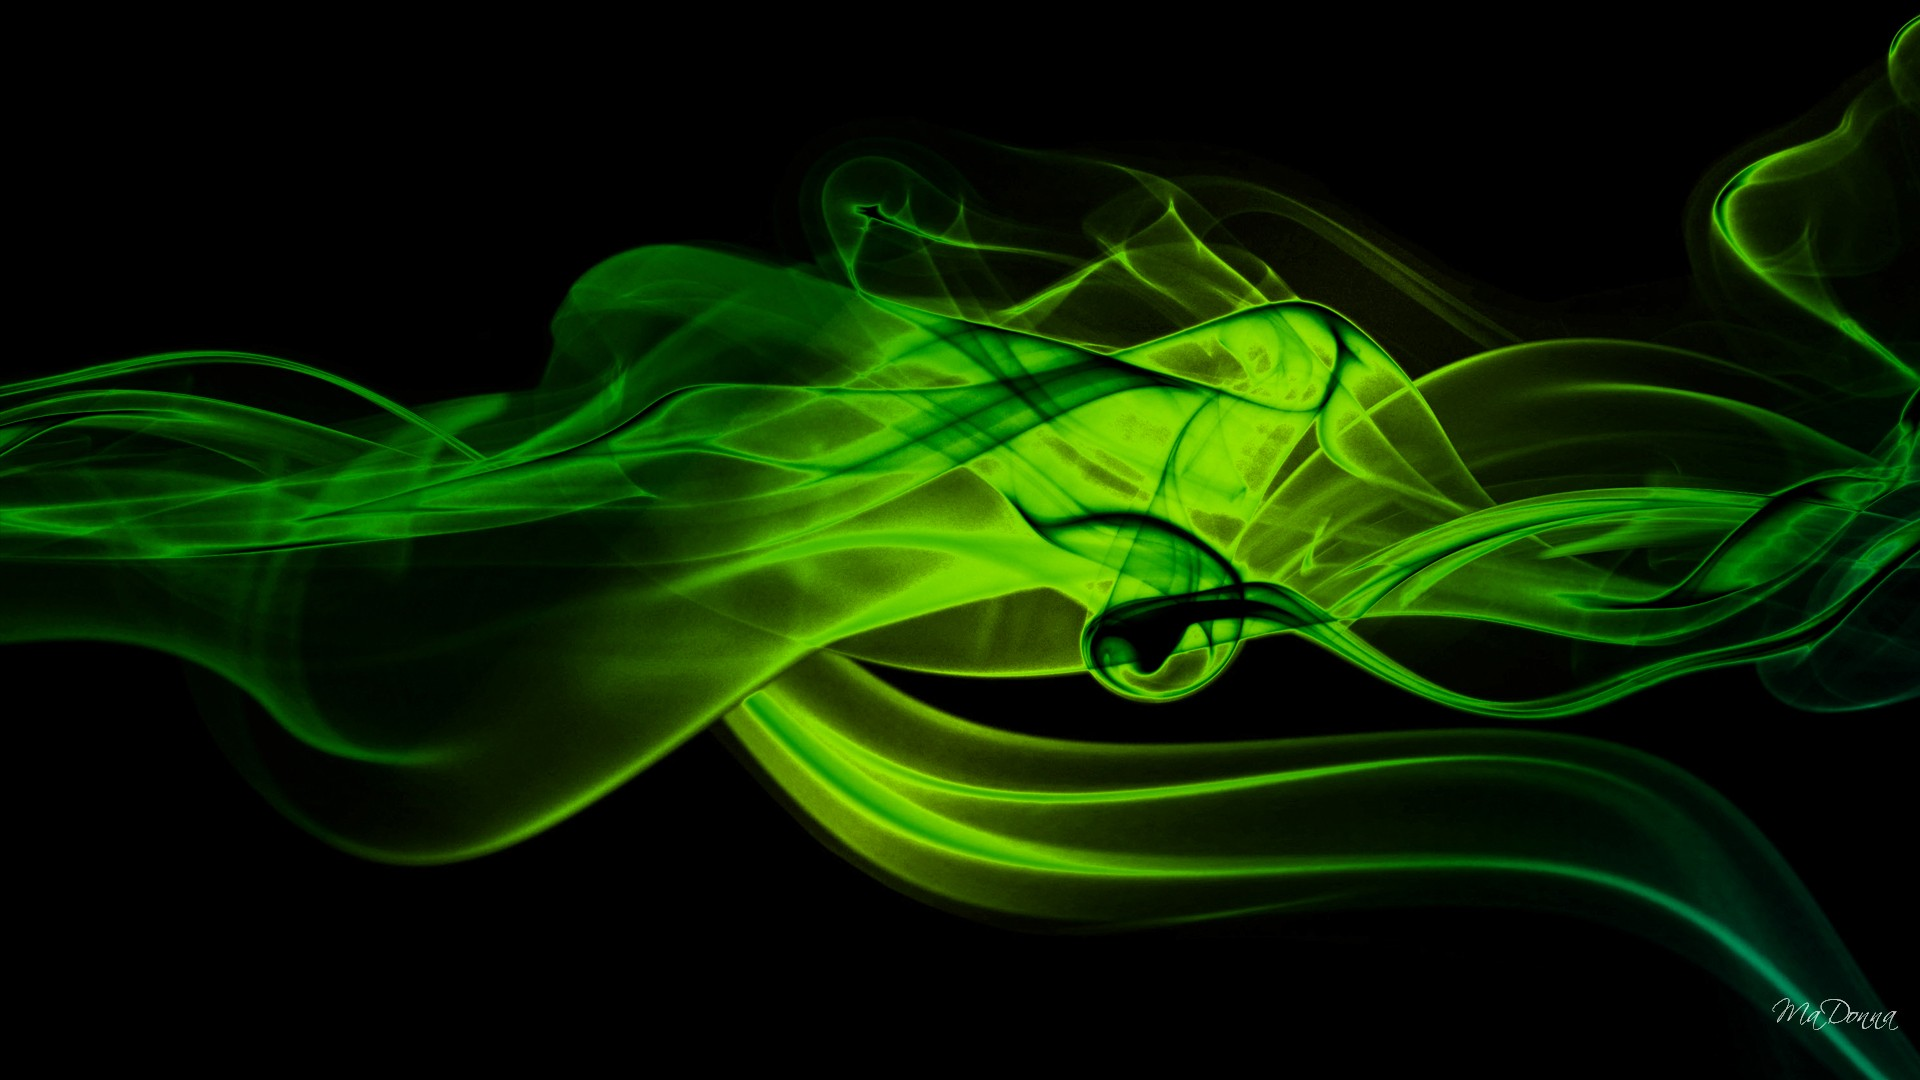 smoke 3d hd wallpapers smoke 3d hd wallpapers smoke 3d pictures 1920x1080